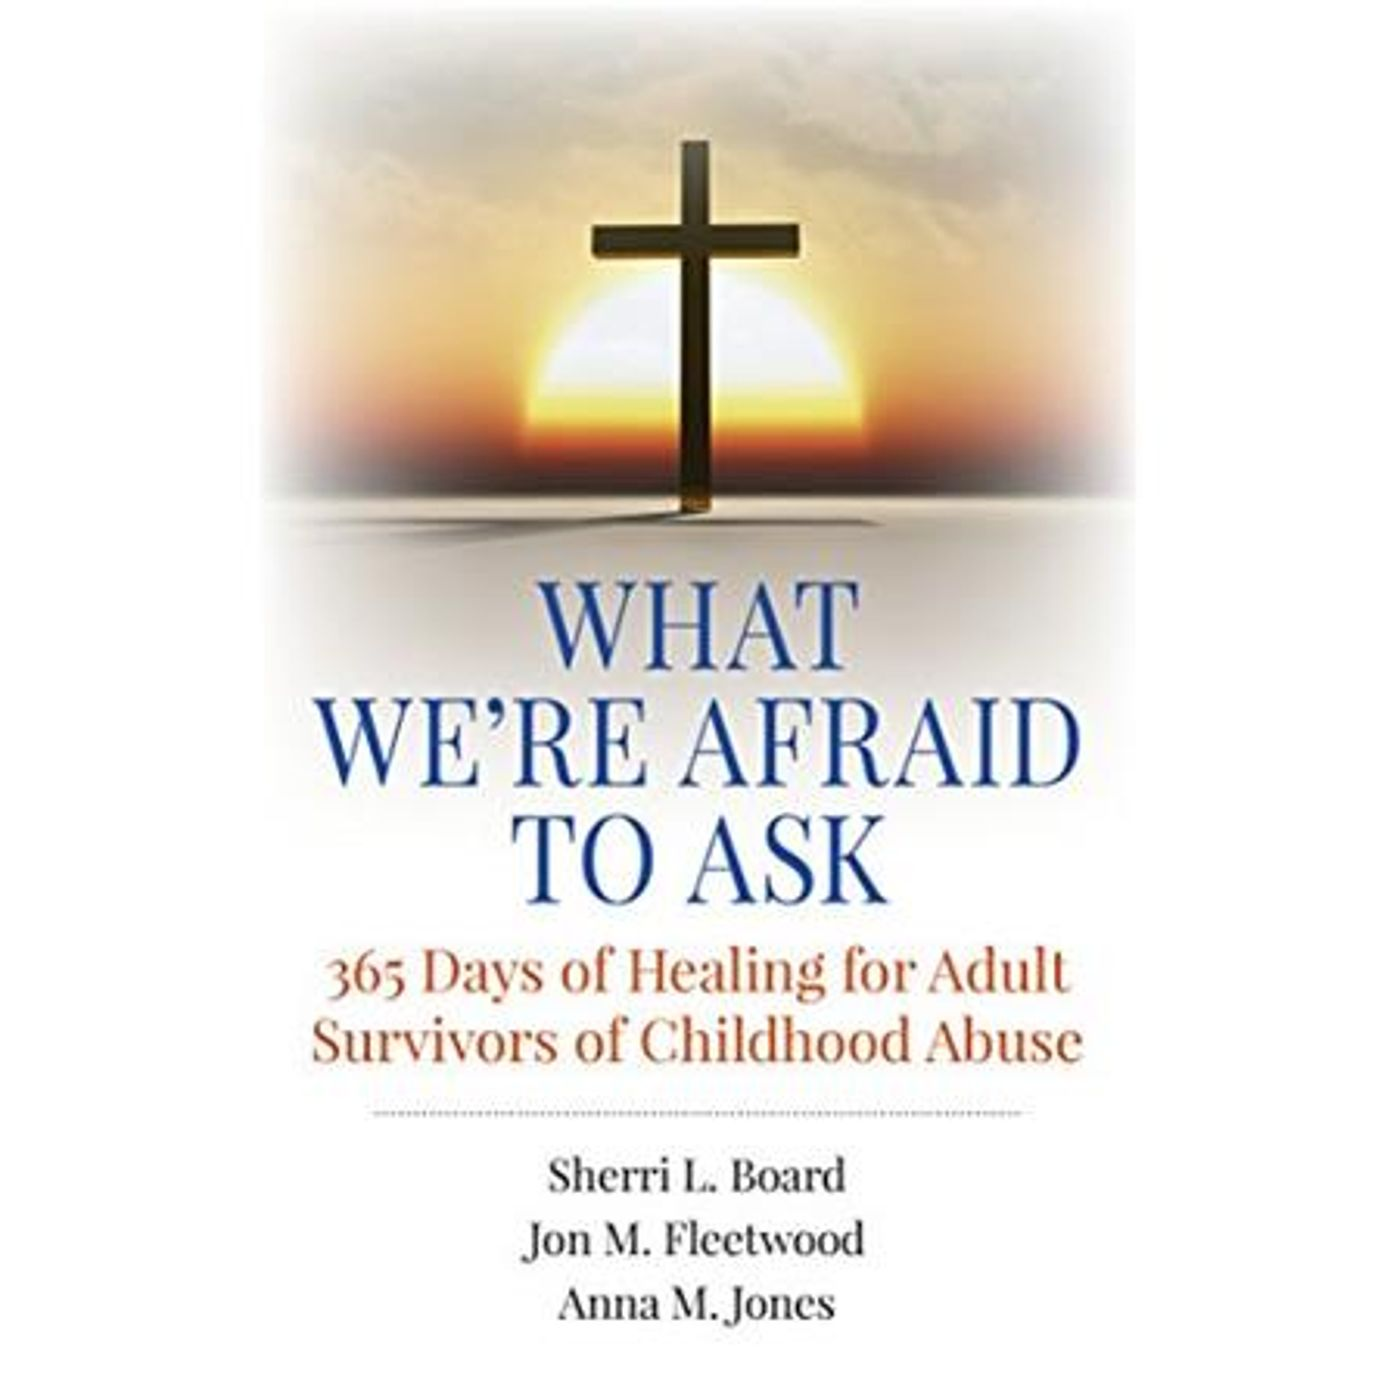 Mental Health News Radio - 365 Days of Healing for Adult Survivors of Childhood Abuse with Anna M. Jones